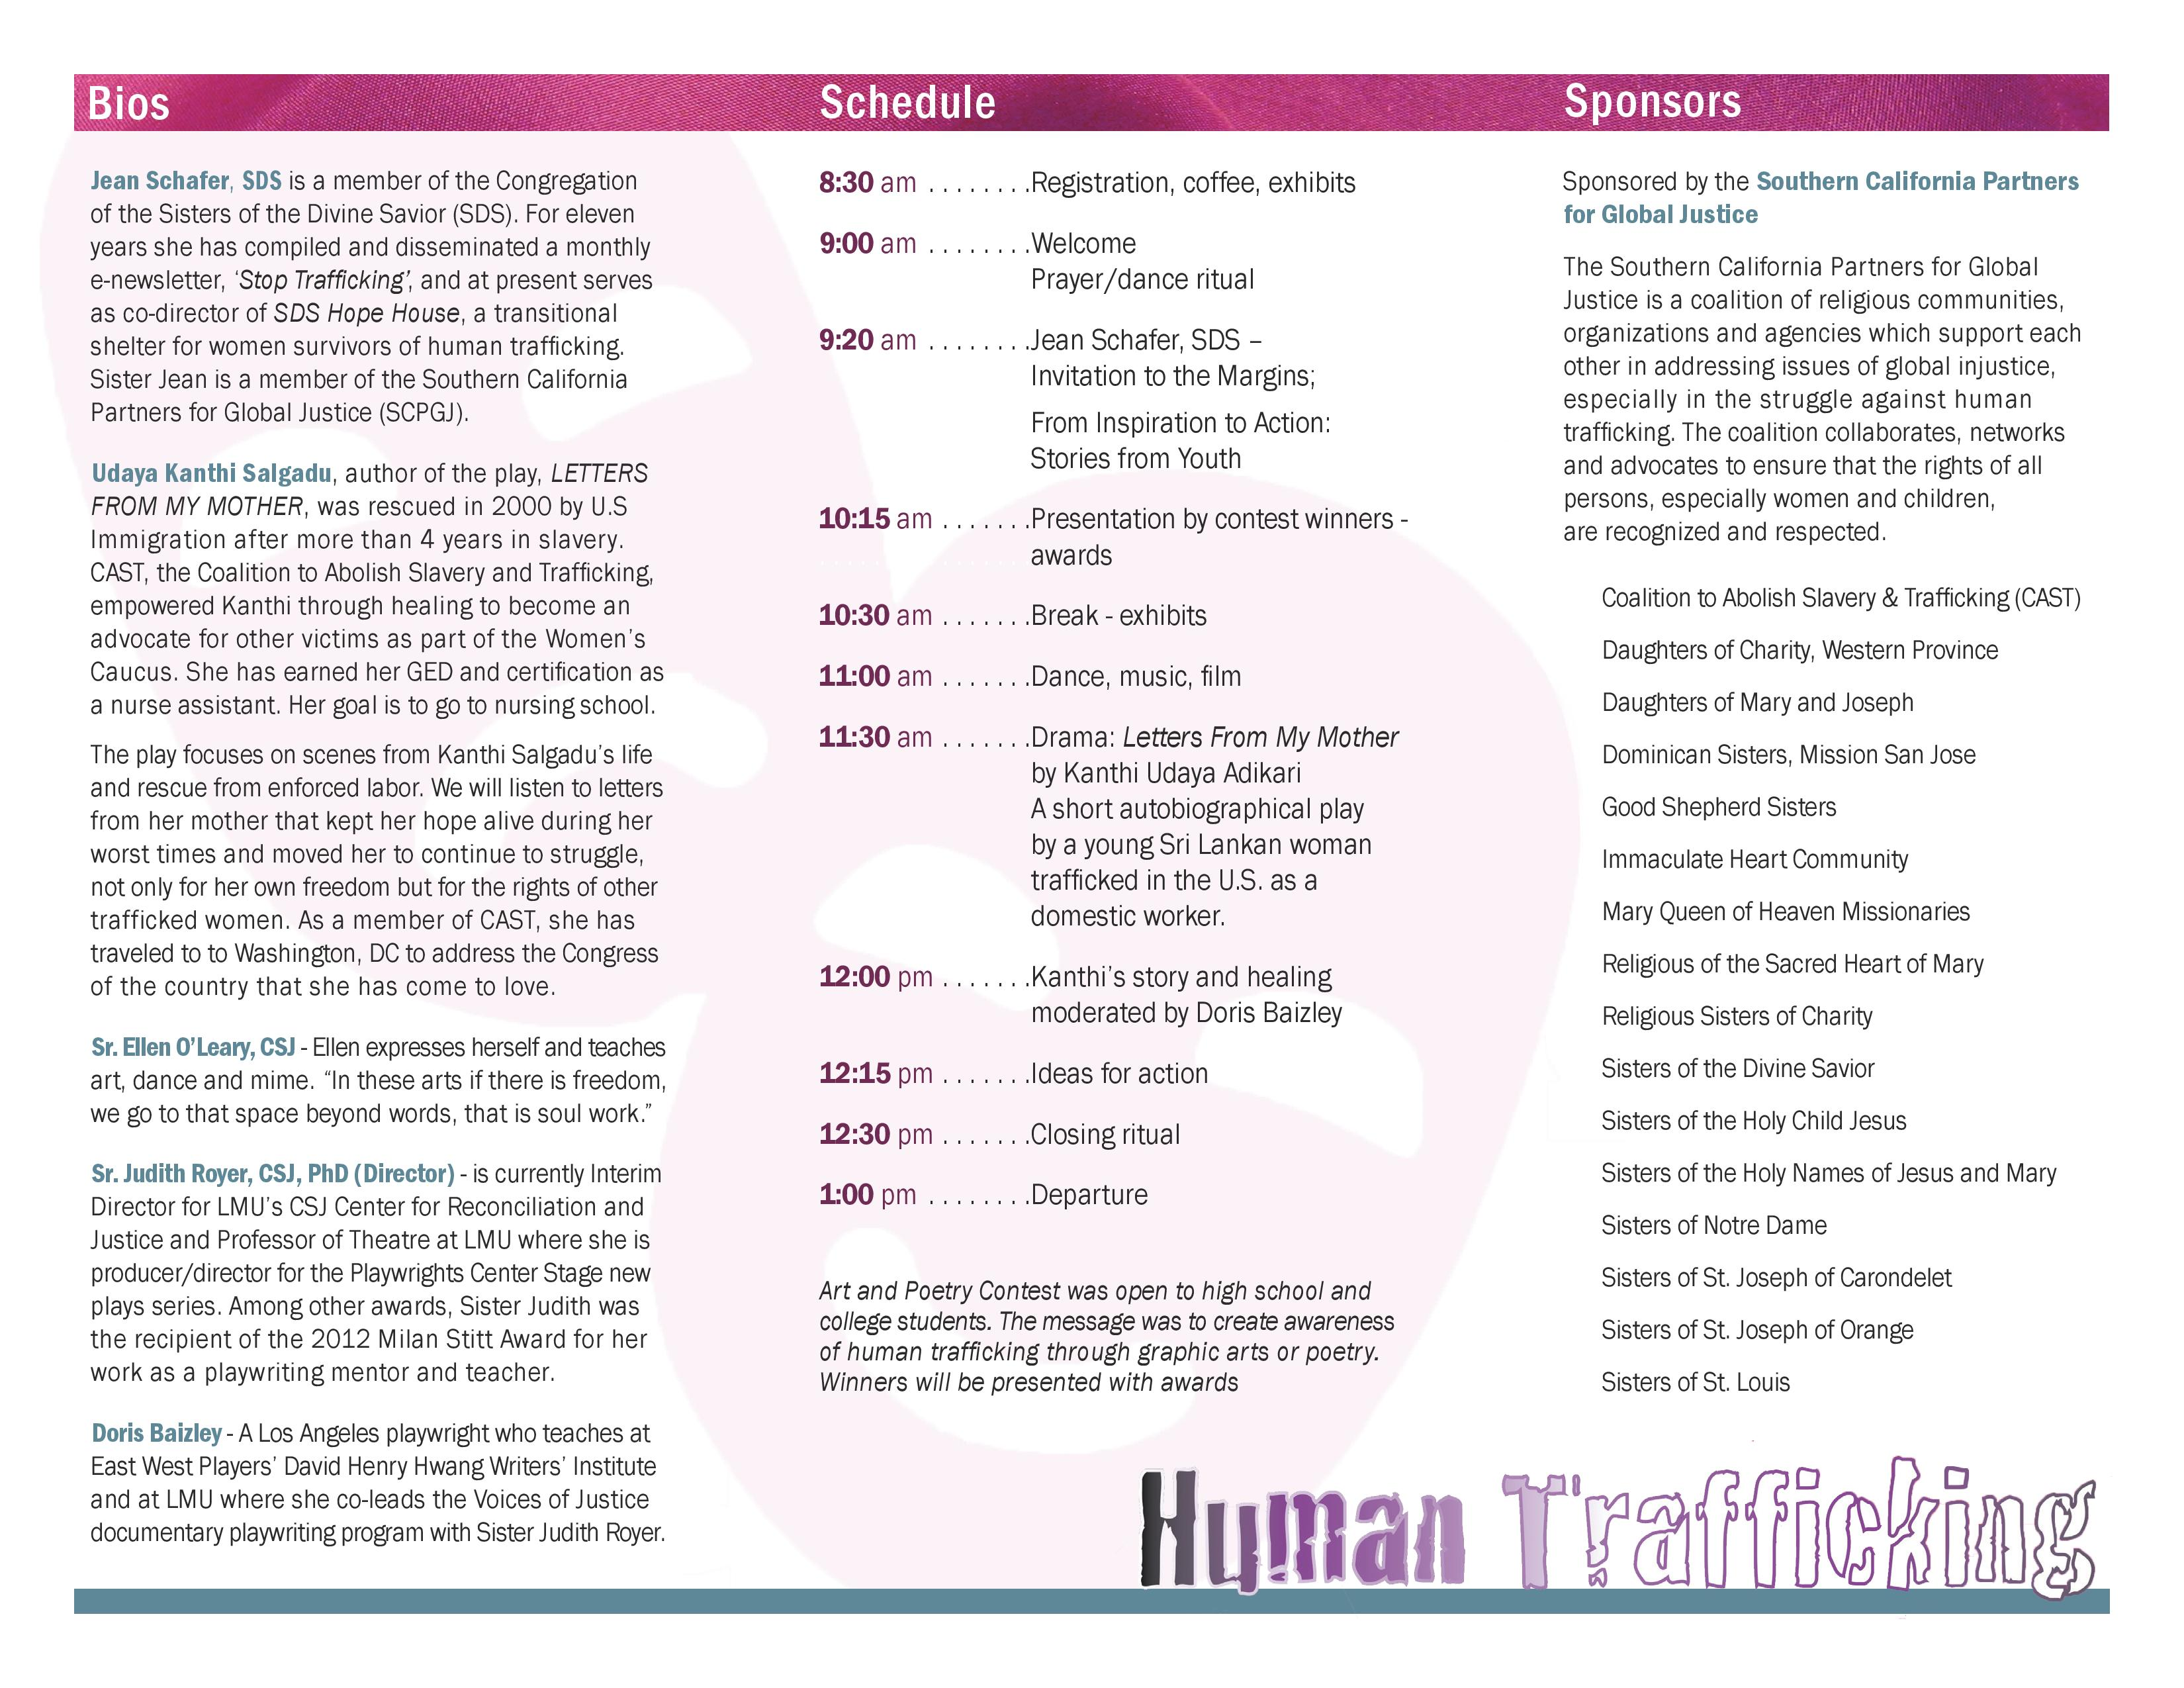 2014 HumanTraffickingBrochure-LA-page-002